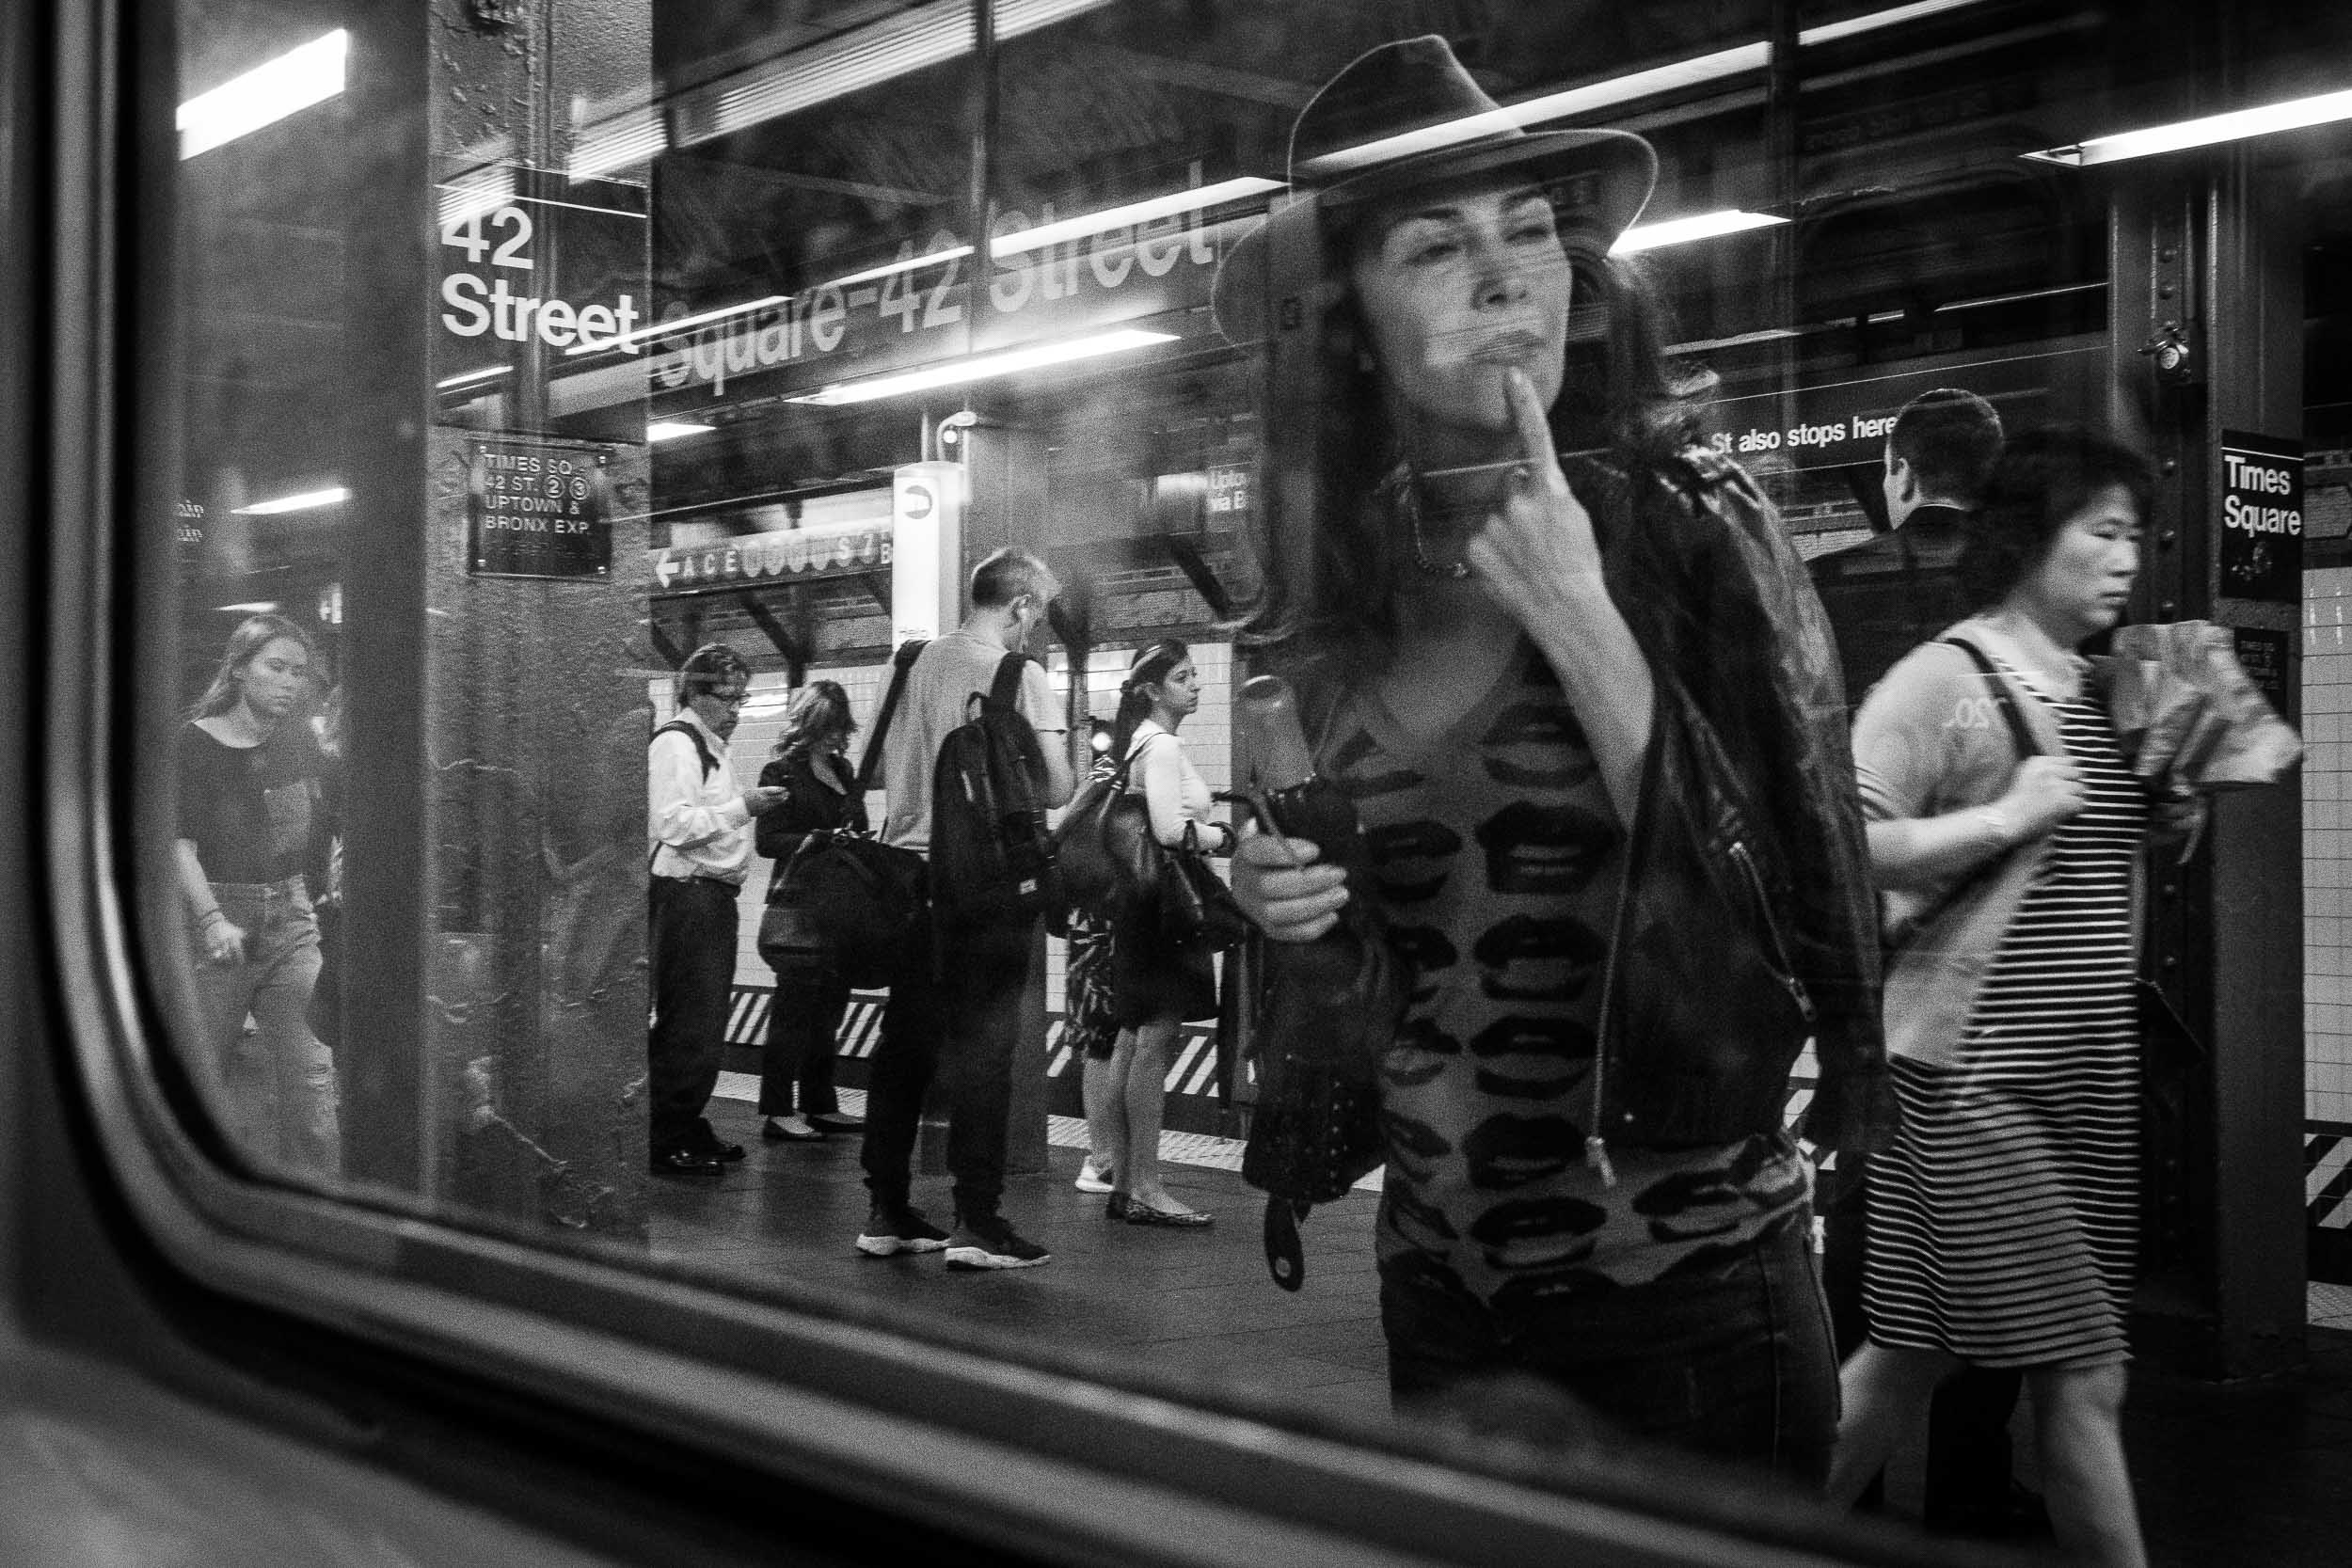 SHOULD I TAKE THE EXPRESS?, New York City